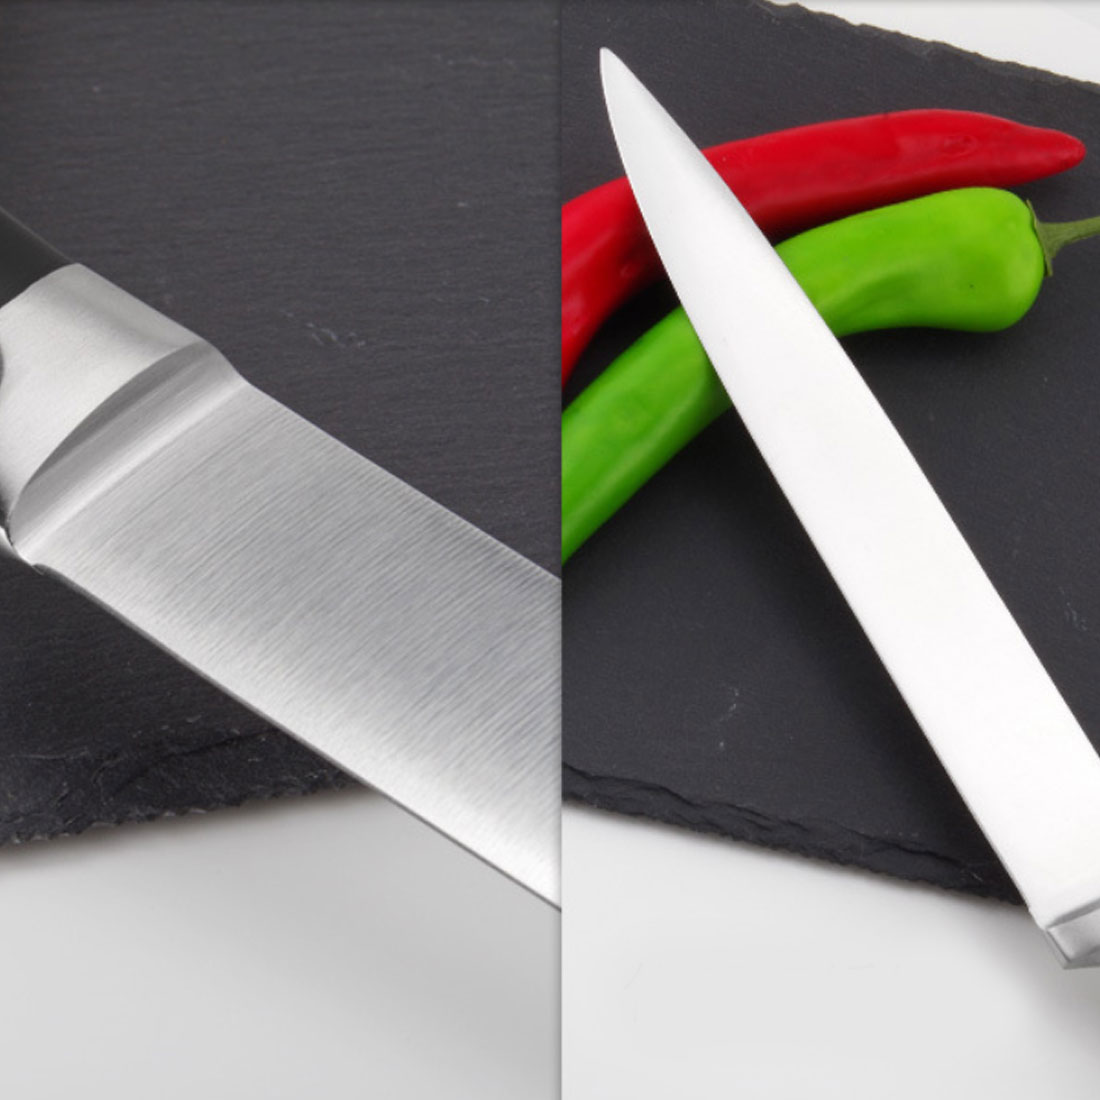 best japanese chef knife high quality 33cm frozen meat vegetable fruit cutter - Japanese Chef Knife